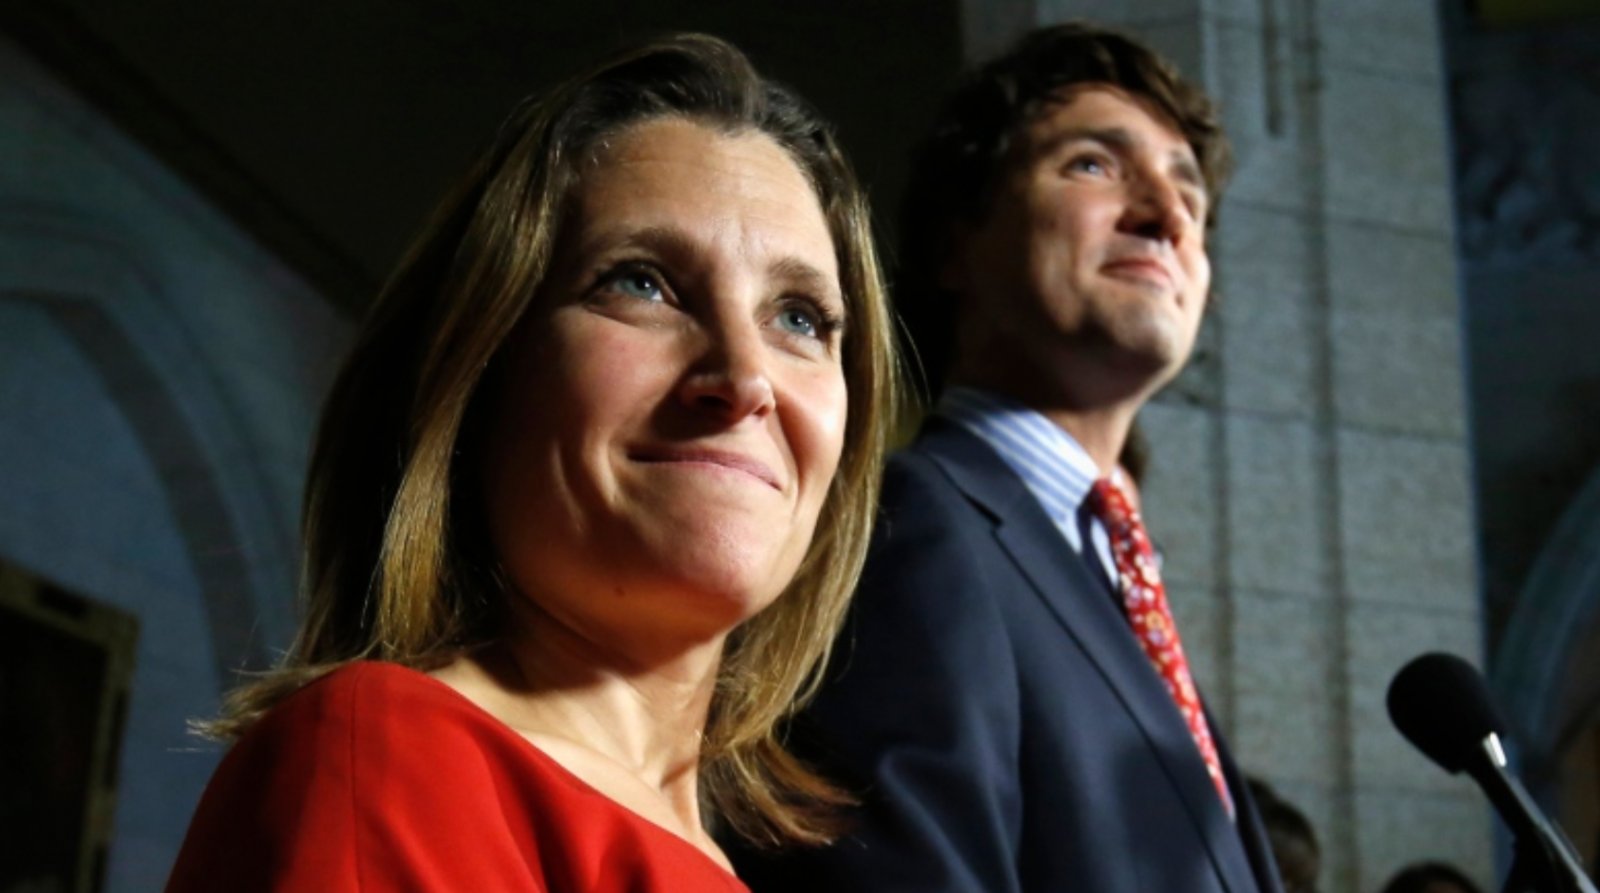 Chrystia Freeland to become foreign minister says the CBC